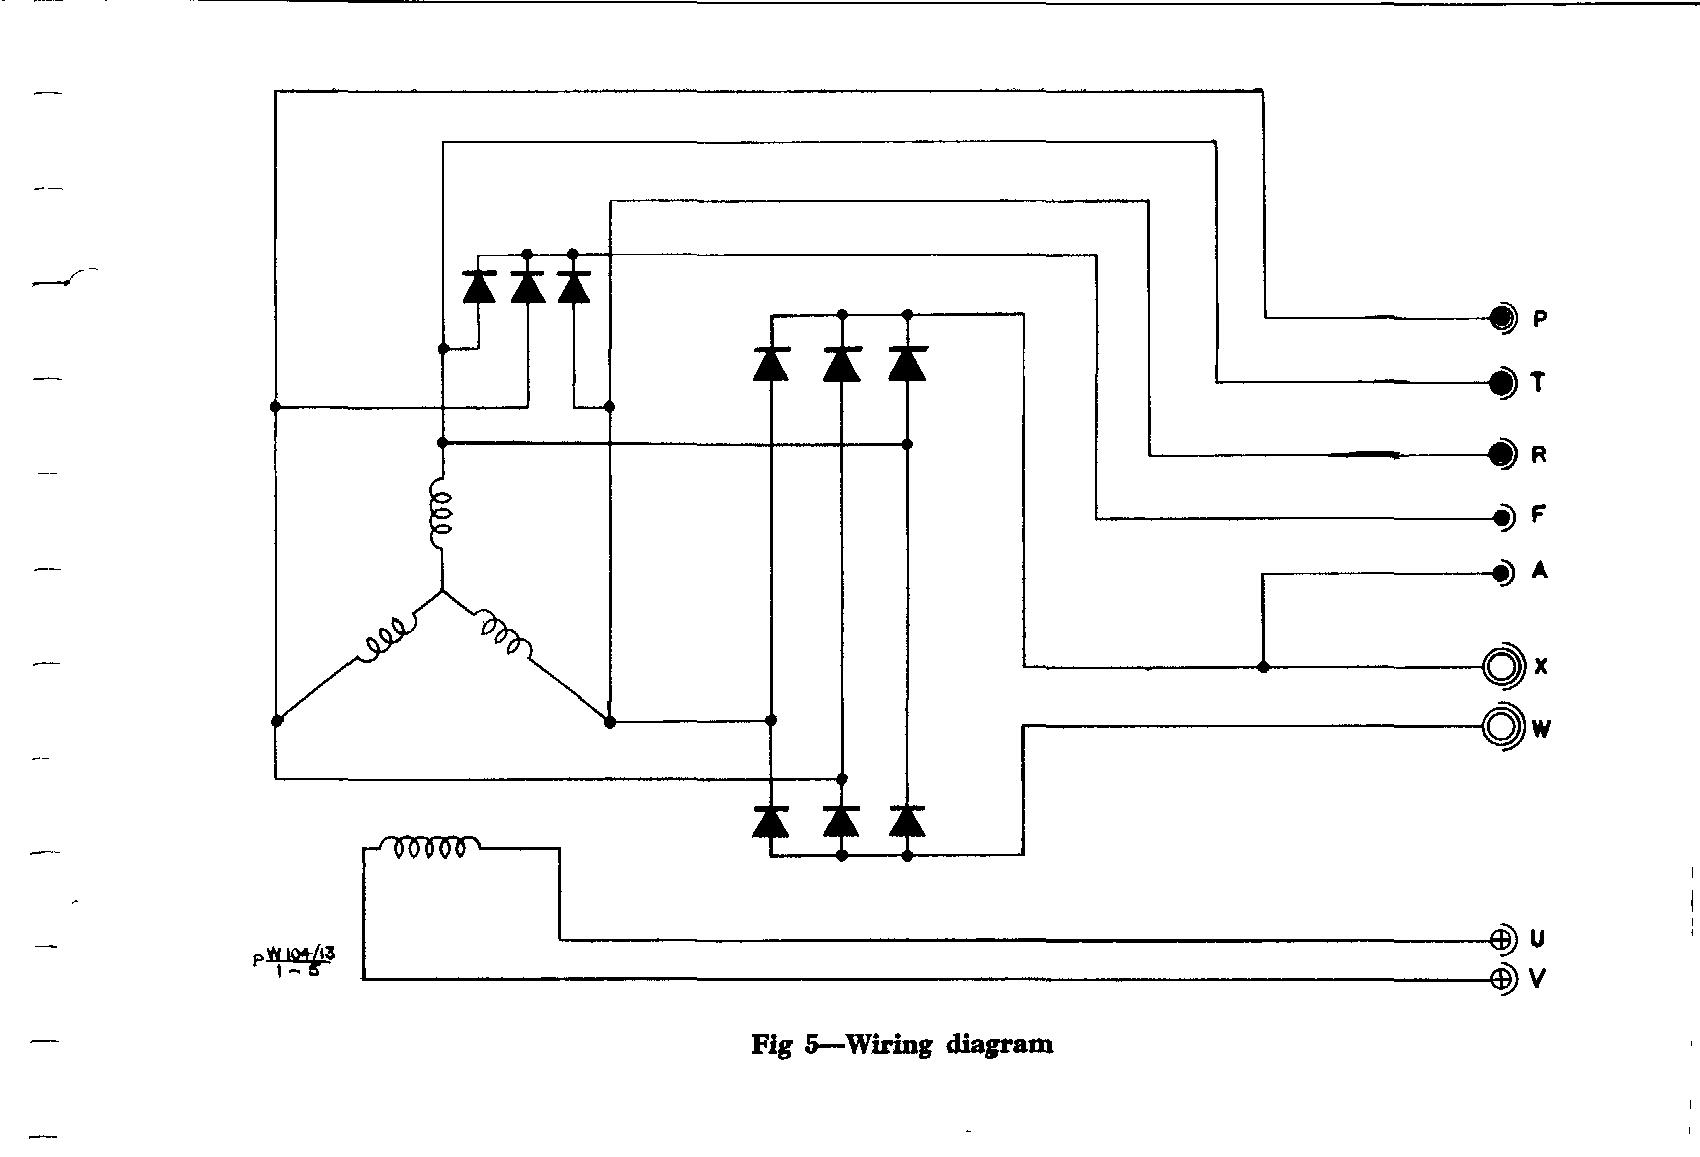 93 dodge cummins ac wiring diagram land rovers military specifics  land rovers military specifics